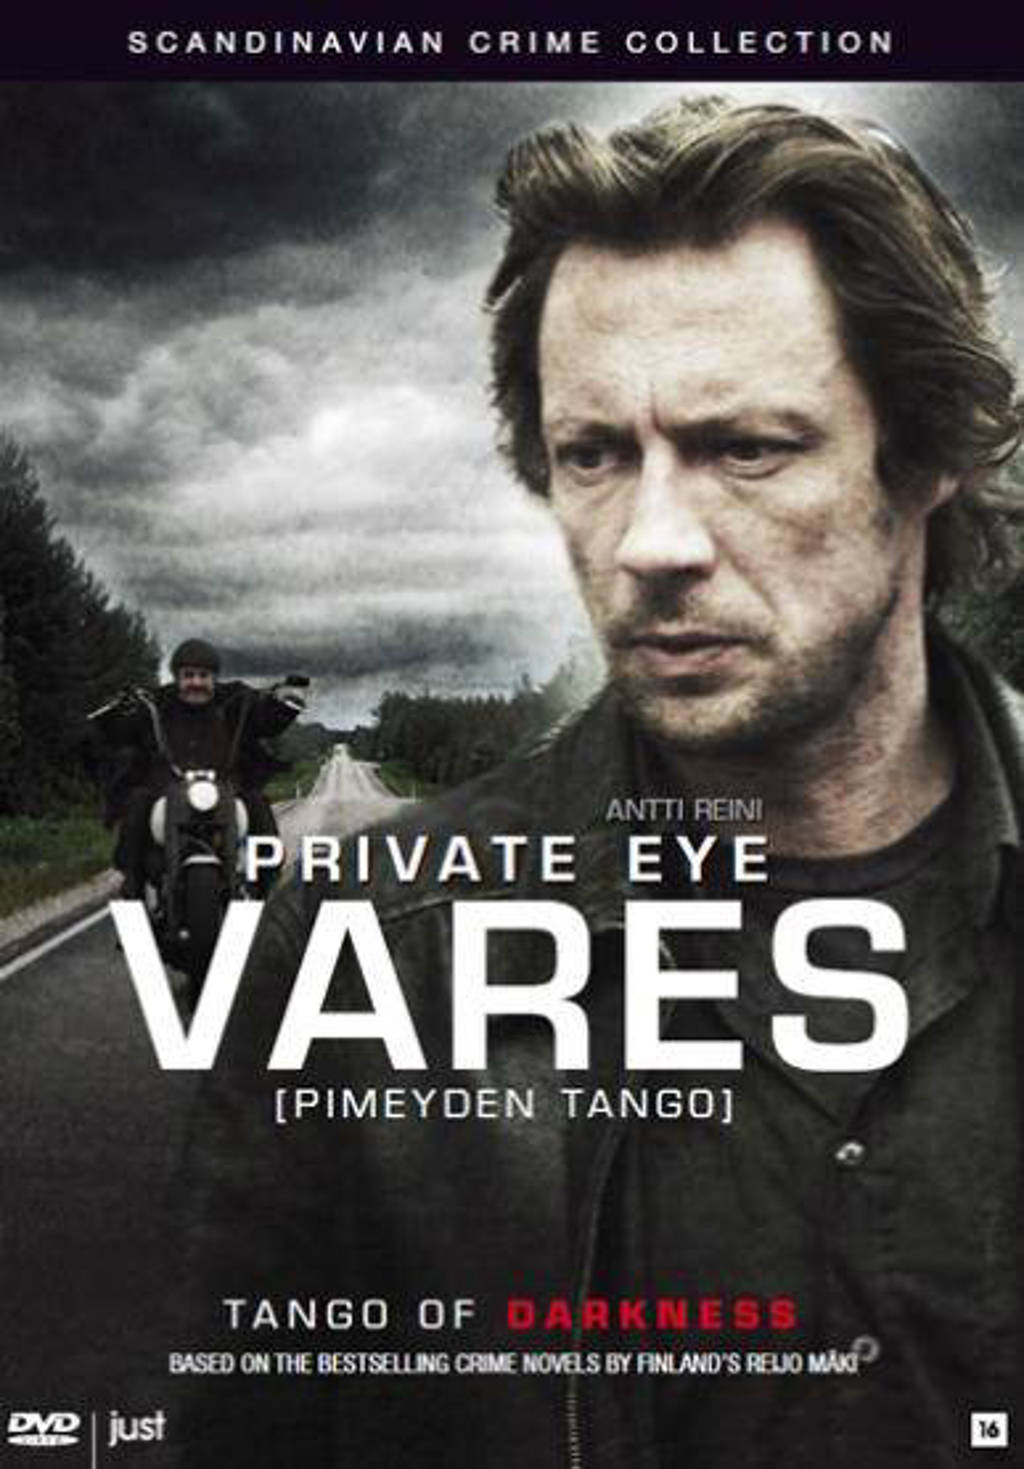 Private eye Vares - Tango of darkness (DVD)